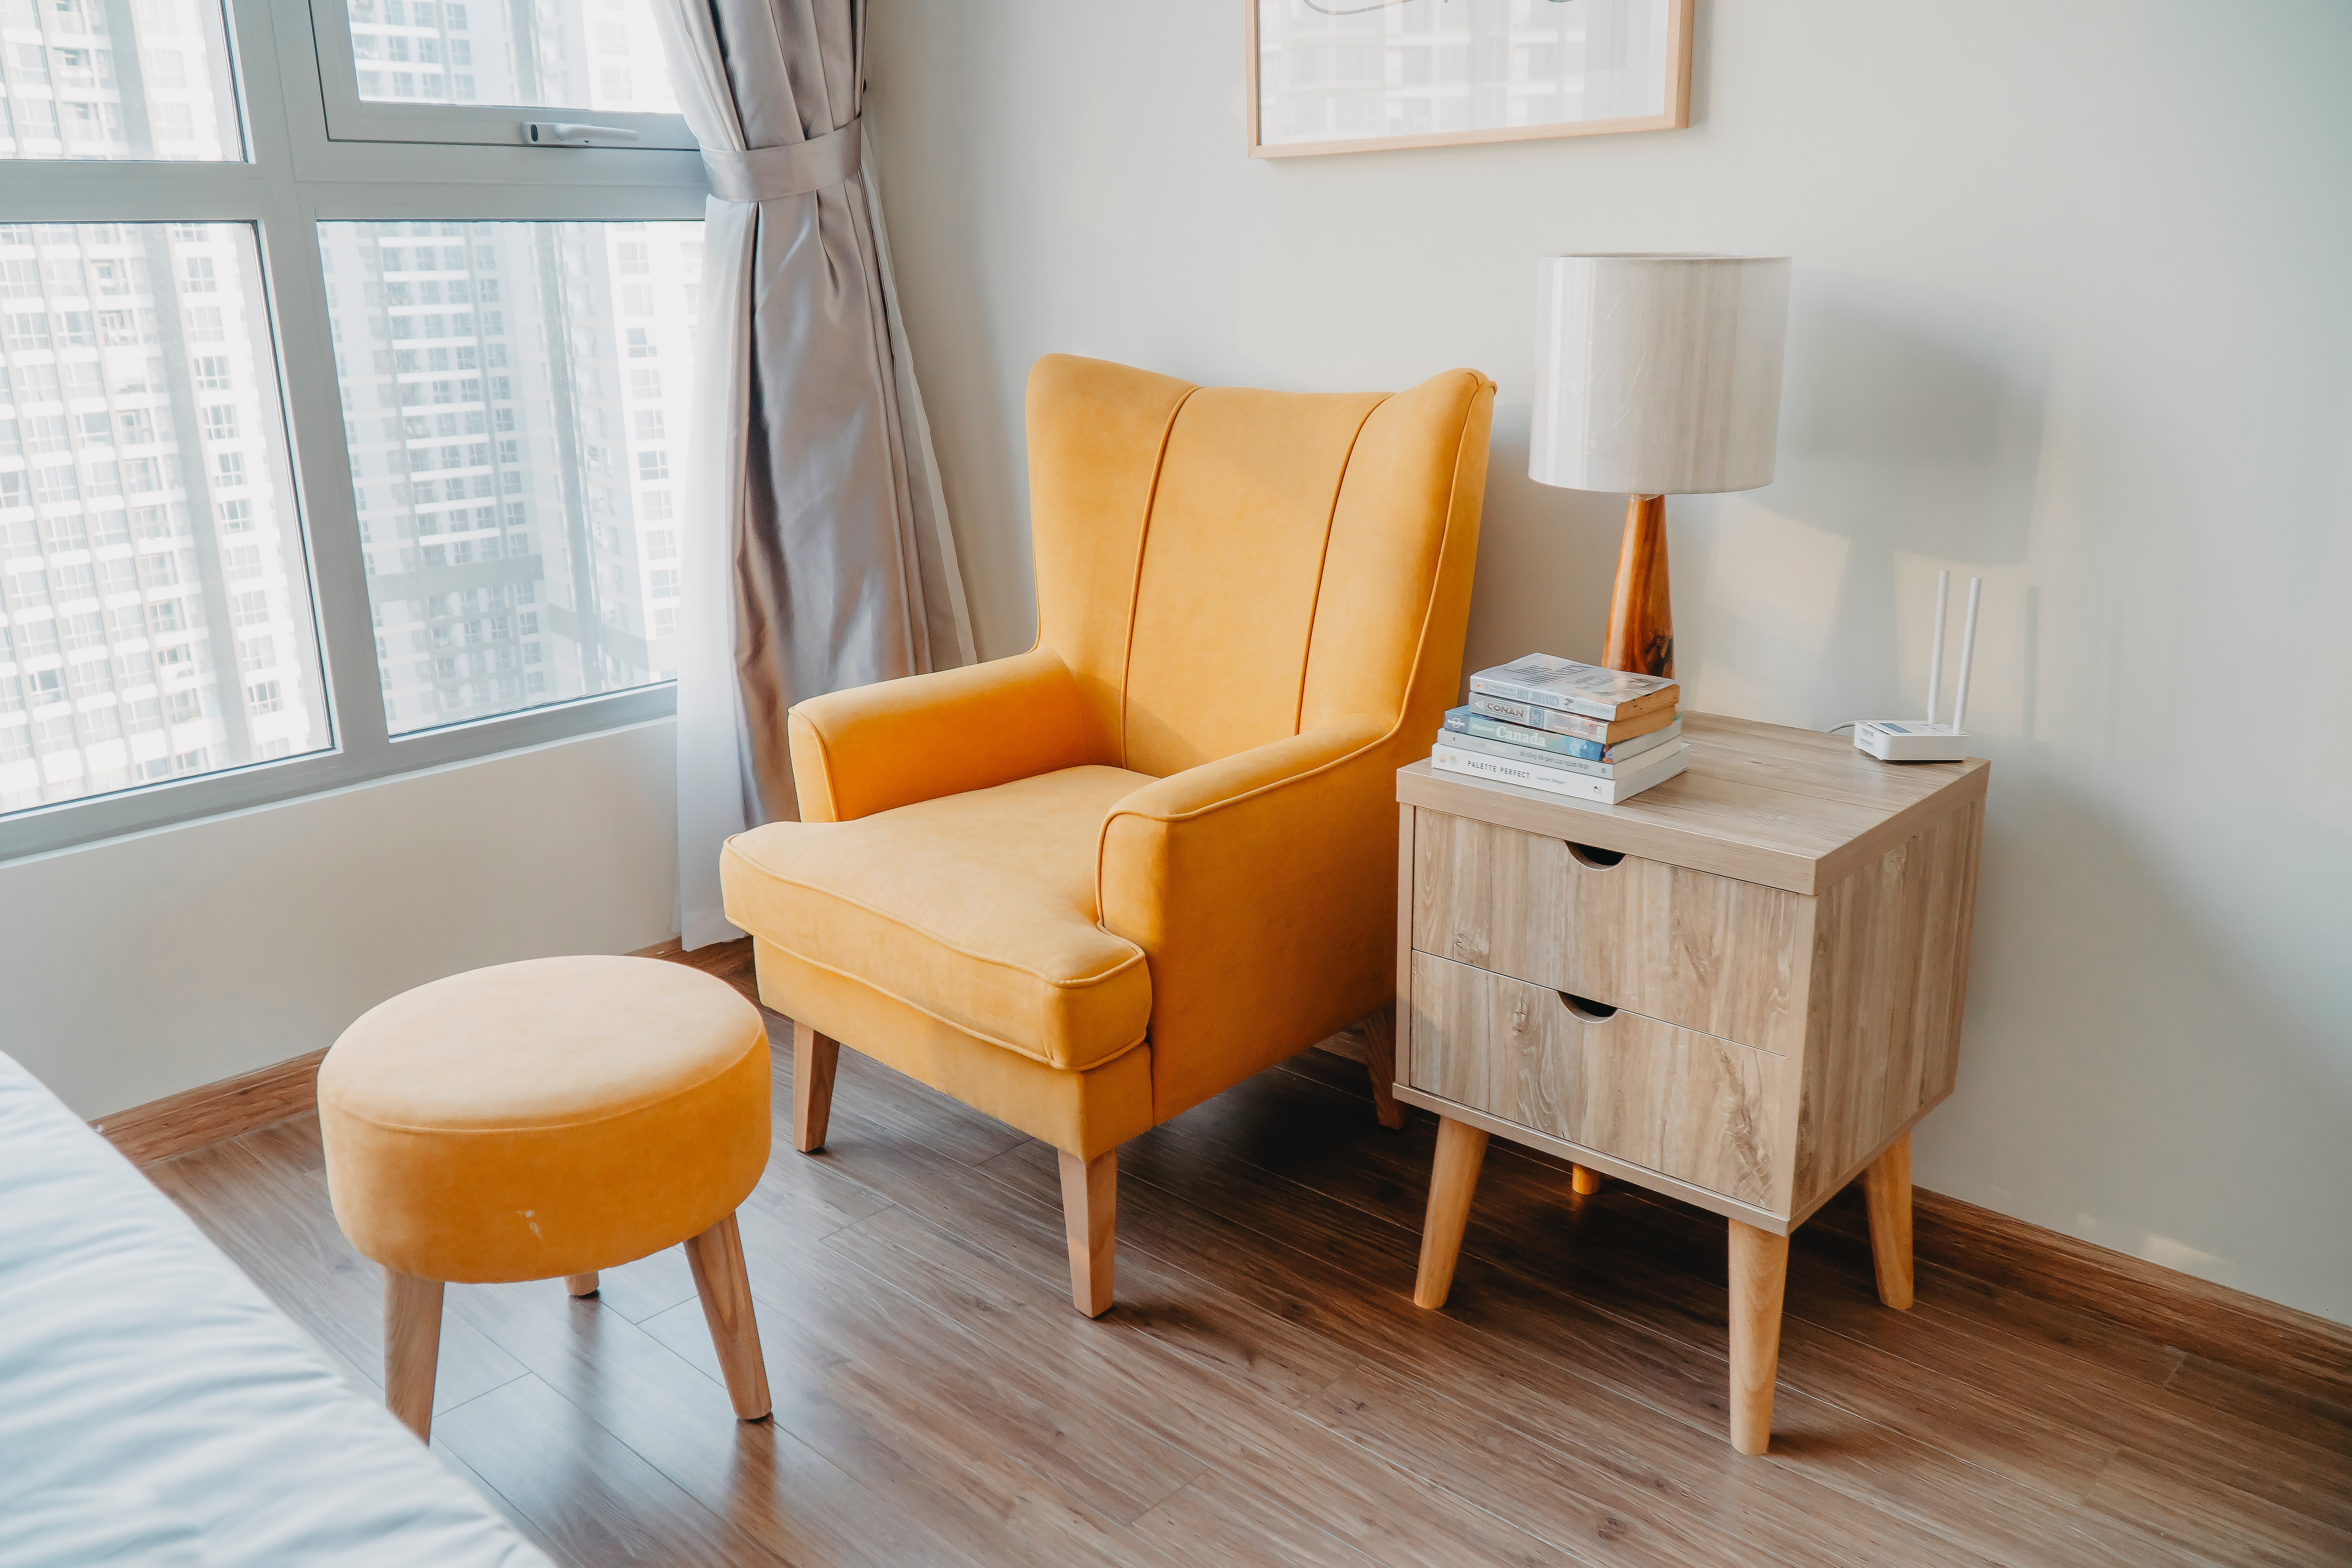 Craigslist Chicago Delivery and Furniture Pickup - GoShare